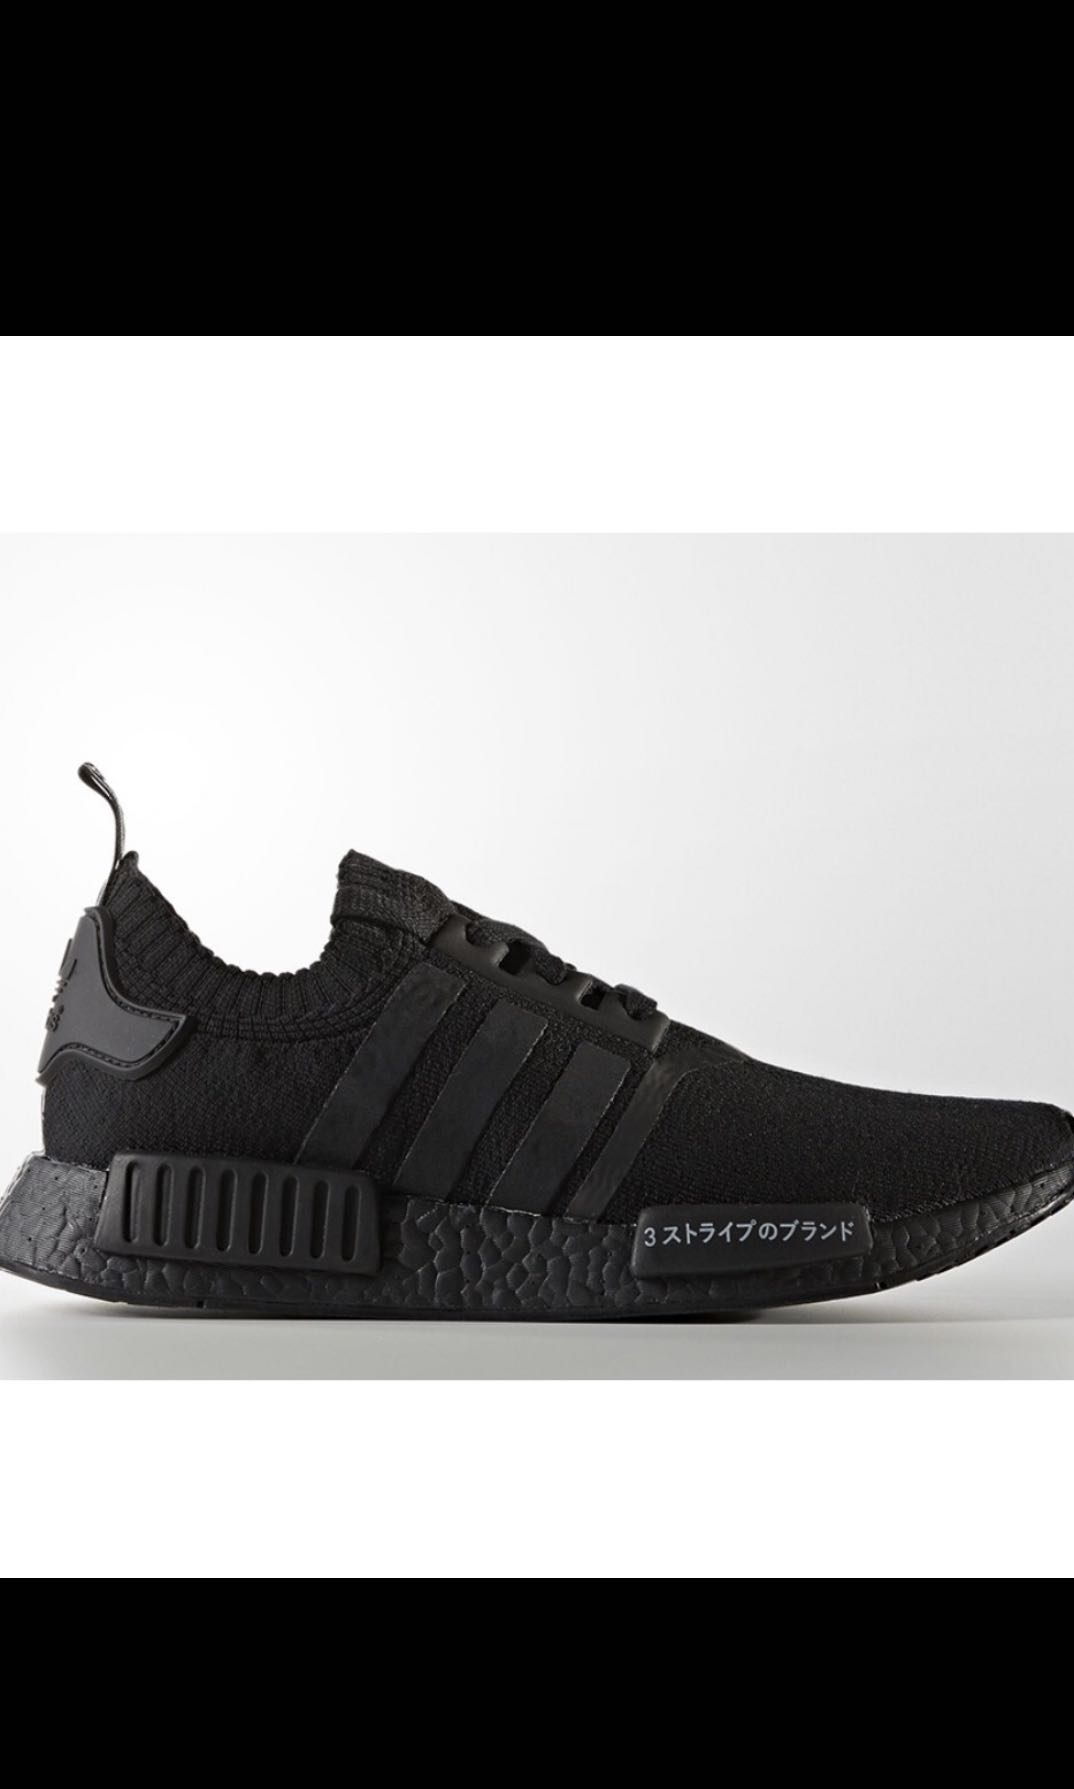 6de2d5bf9 Adidas NMD PK Triple Black Japan